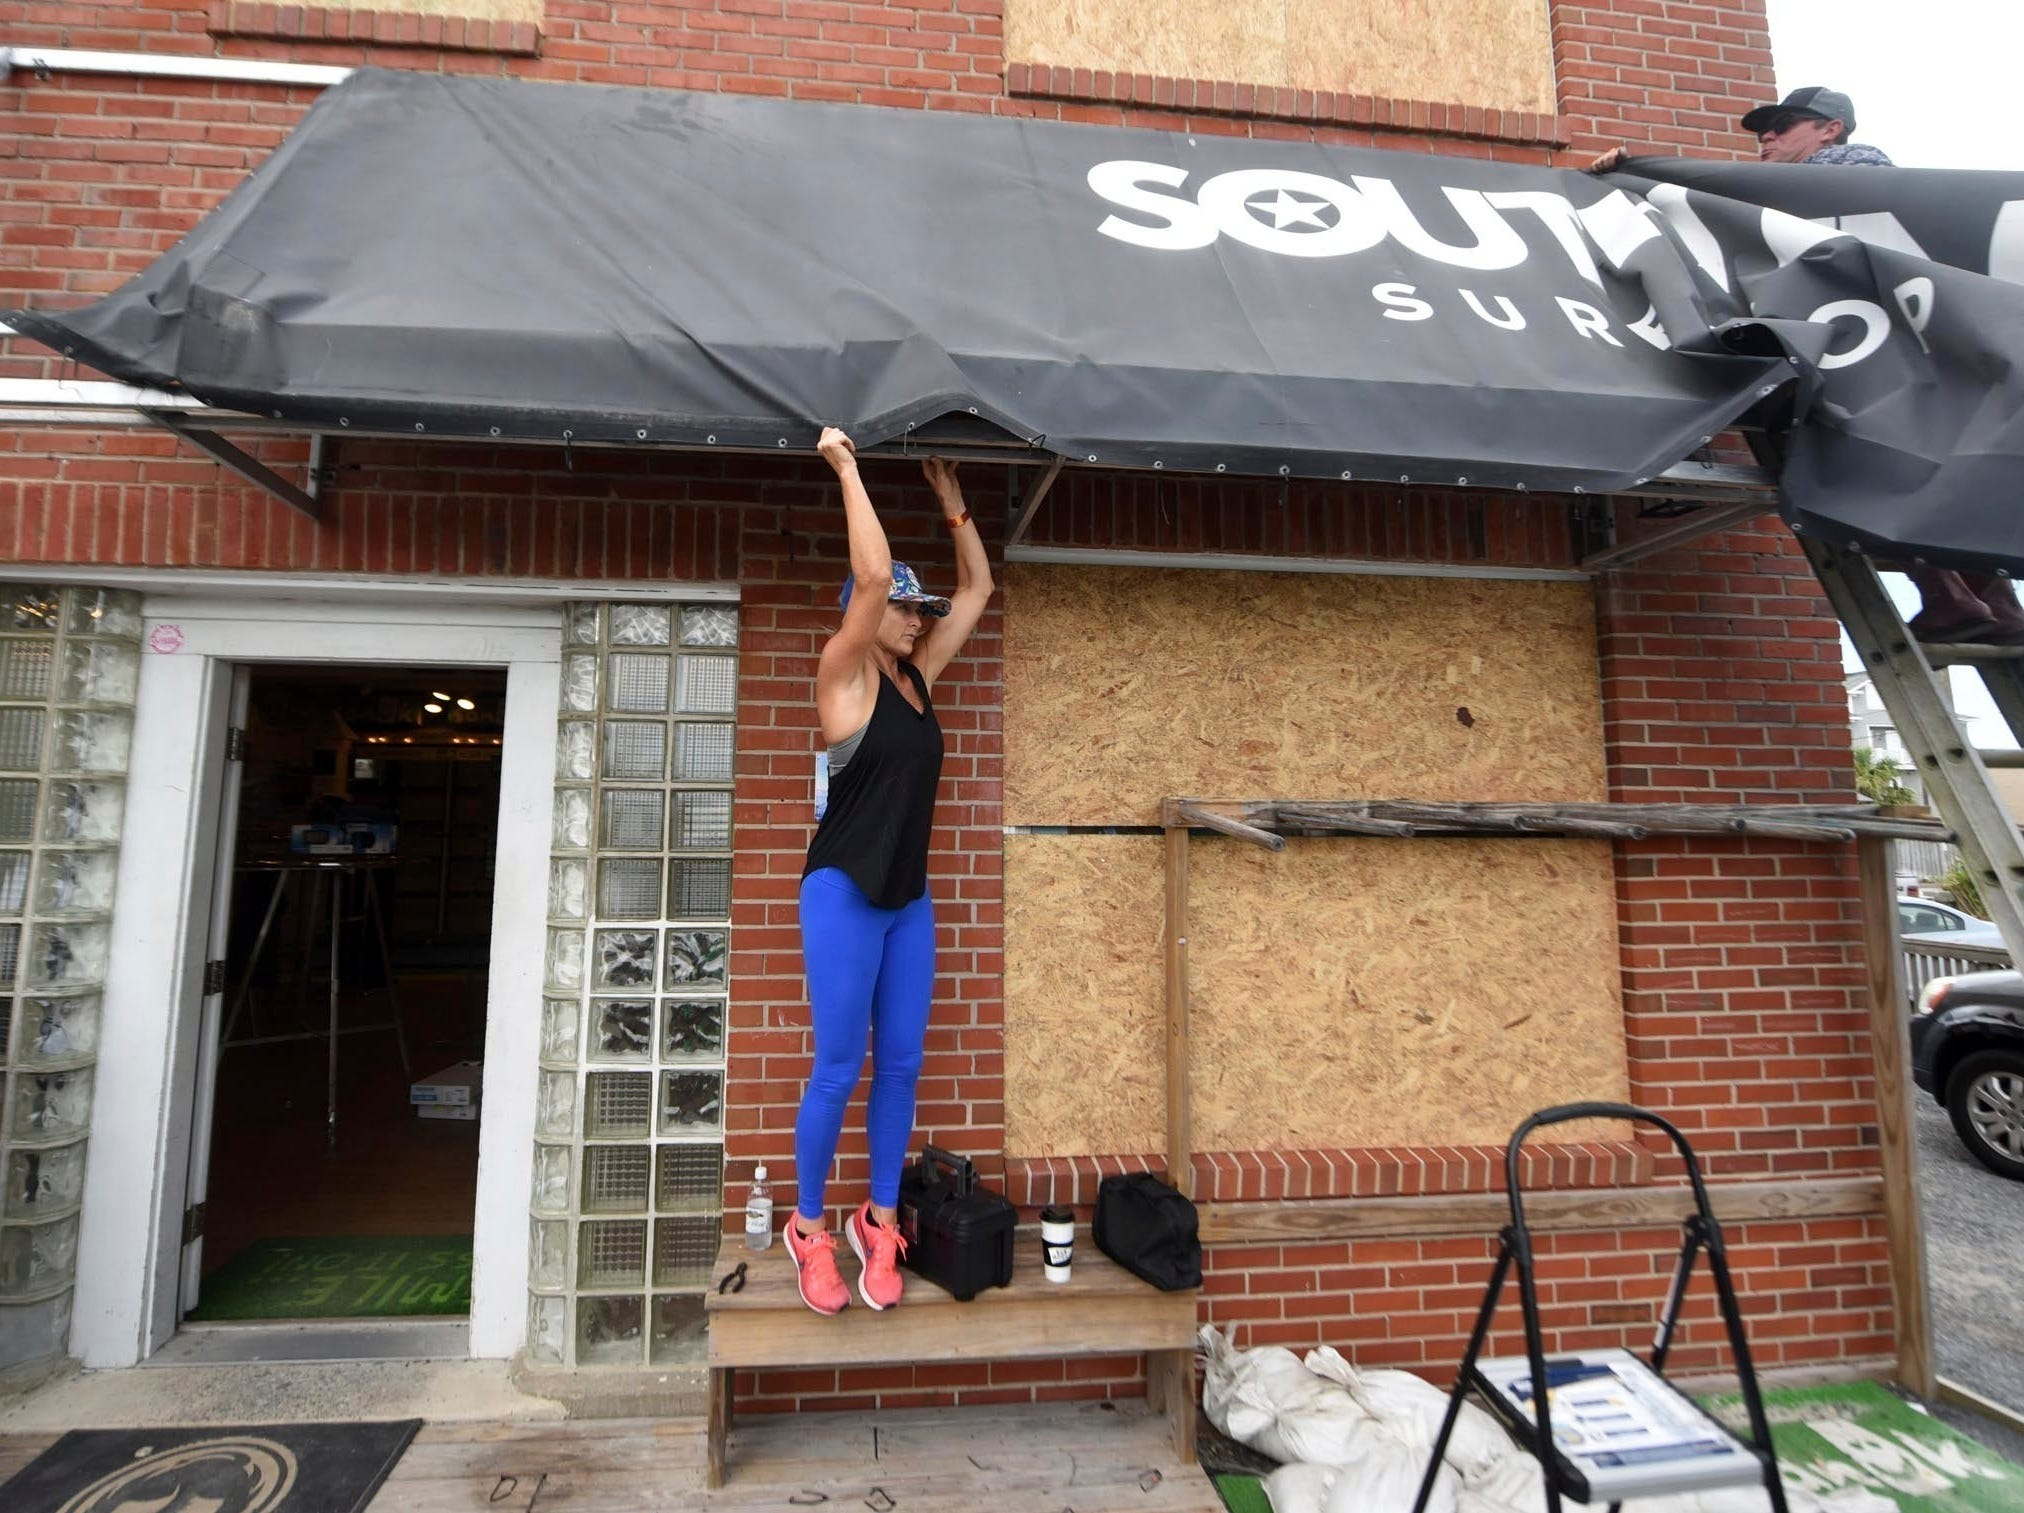 "FILE- In this Sept. 11, 2018, file photo Ashley DeGroote, left, and husband Jeff DeGroote remove the awning at South End Surf Shop in Wrightsville Beach, N.C., in preparation for Hurricane Florence. Though it's far from clear how much economic havoc Hurricane Florence will inflict on the southeastern coast, from South Carolina through Virginia, the damage won't be easily or quickly overcome. In those states, critically important industries like tourism and agriculture are sure to suffer. ""These storms can be very disruptive to regional economies, and it takes time for them to recover,"" said Ryan Sweet, an economist at Moody's Analytics."